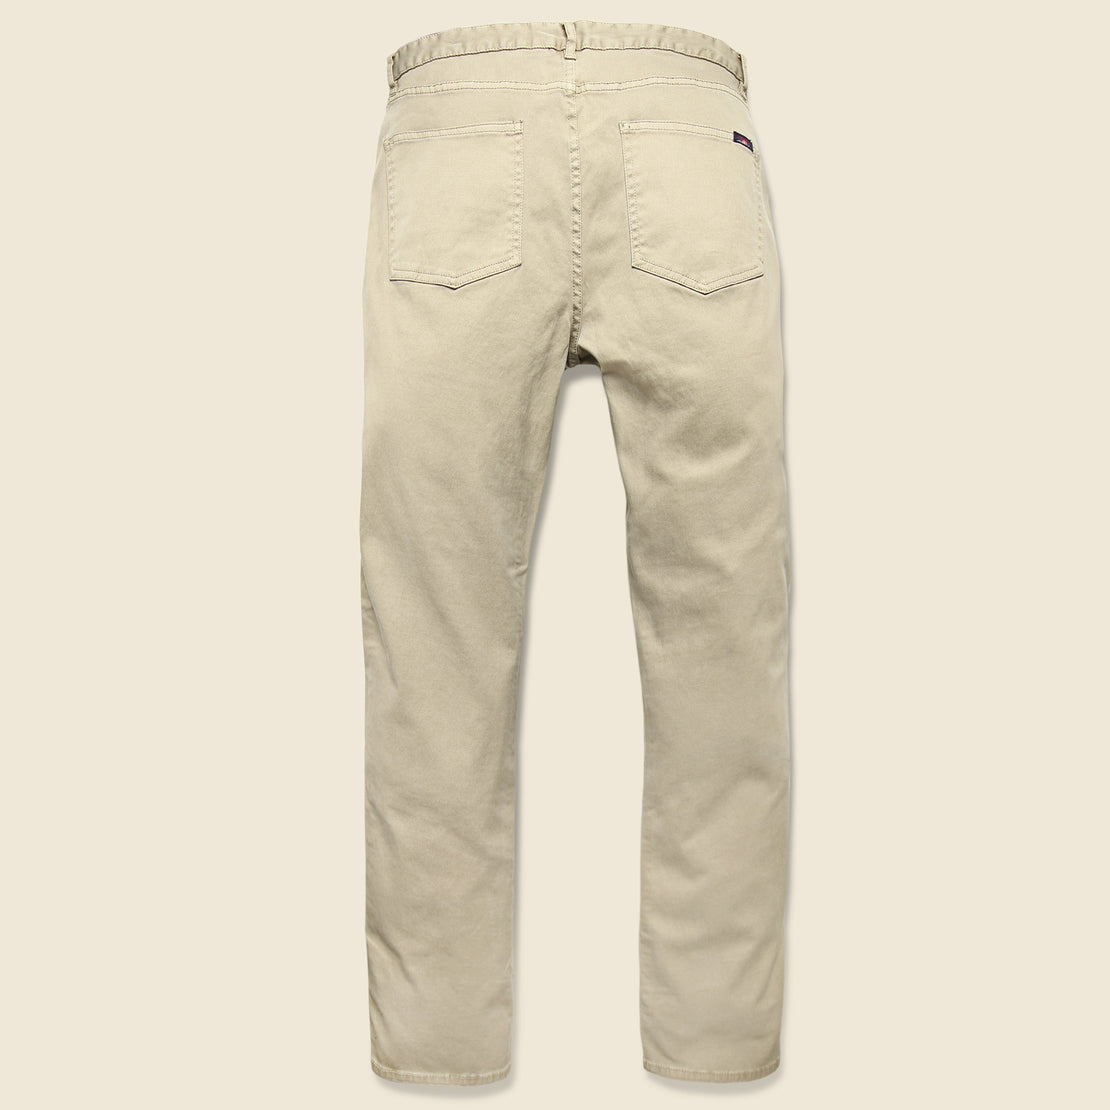 Cavalry Twill Jean - Light Khaki